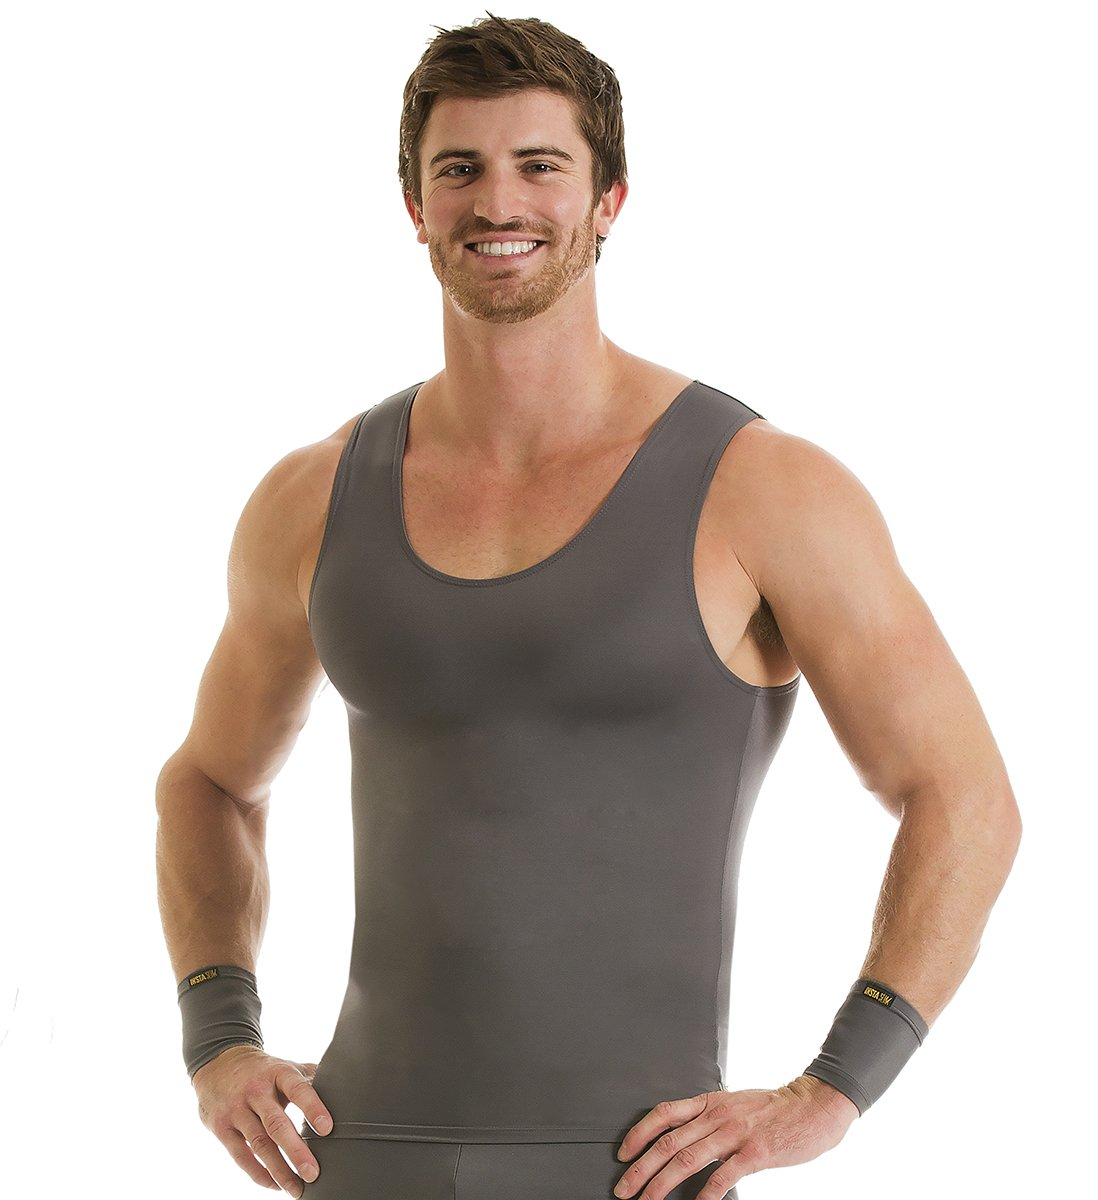 Insta Slim 3 Pack Muscle Tank, Look Up to 5 Inches Slimmer Instantly, Grey, Large, The Magic is in The Fabric!